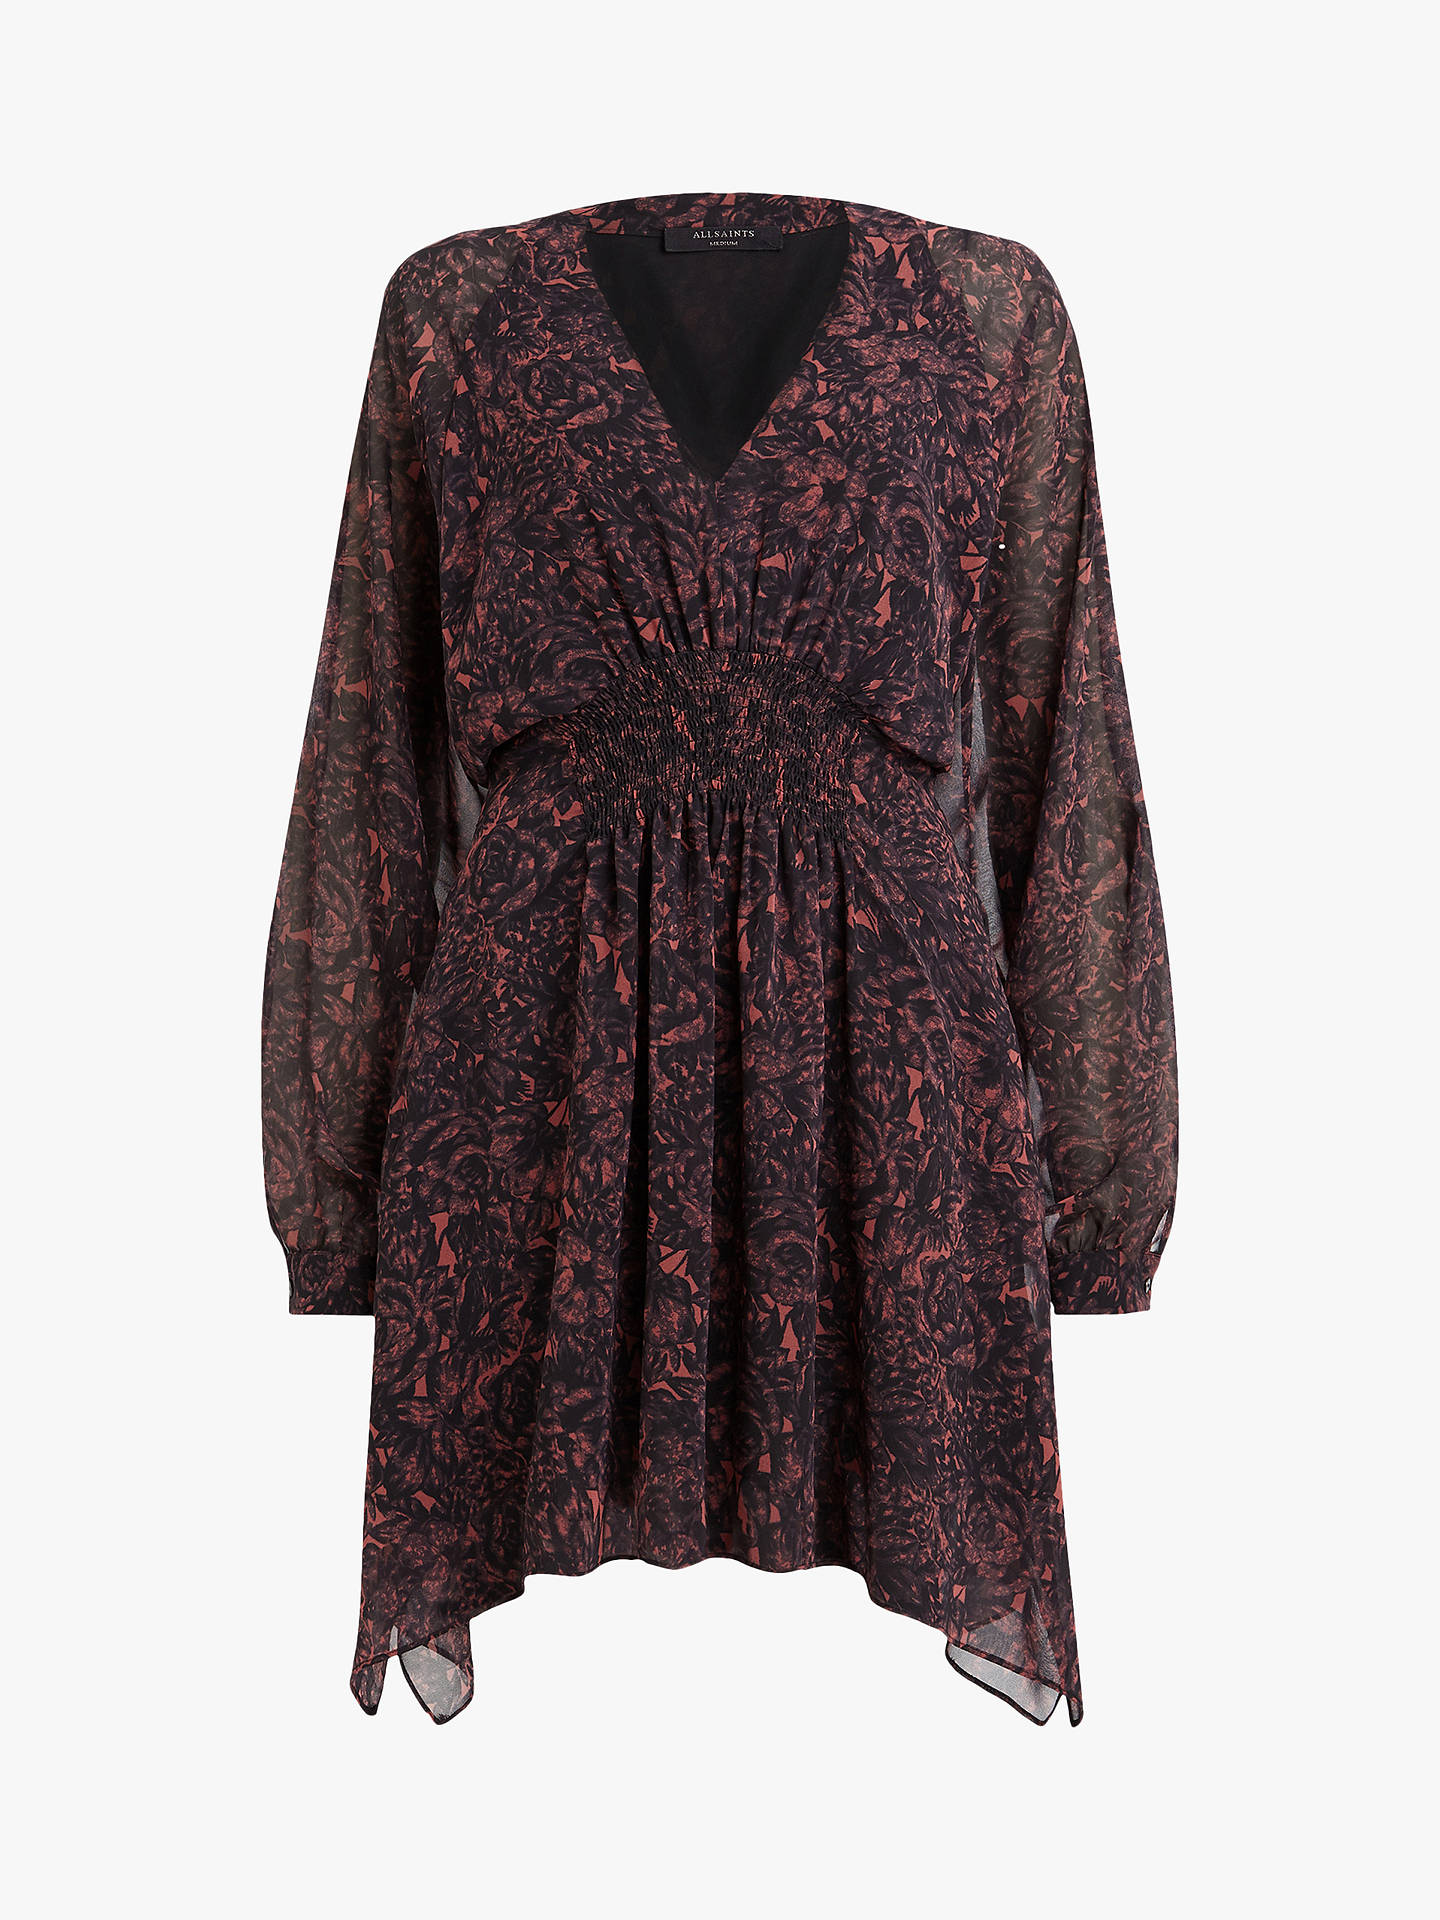 BuyAllSaints Nichola Rosey Dress, Berry Red/Multi, L Online at johnlewis.com